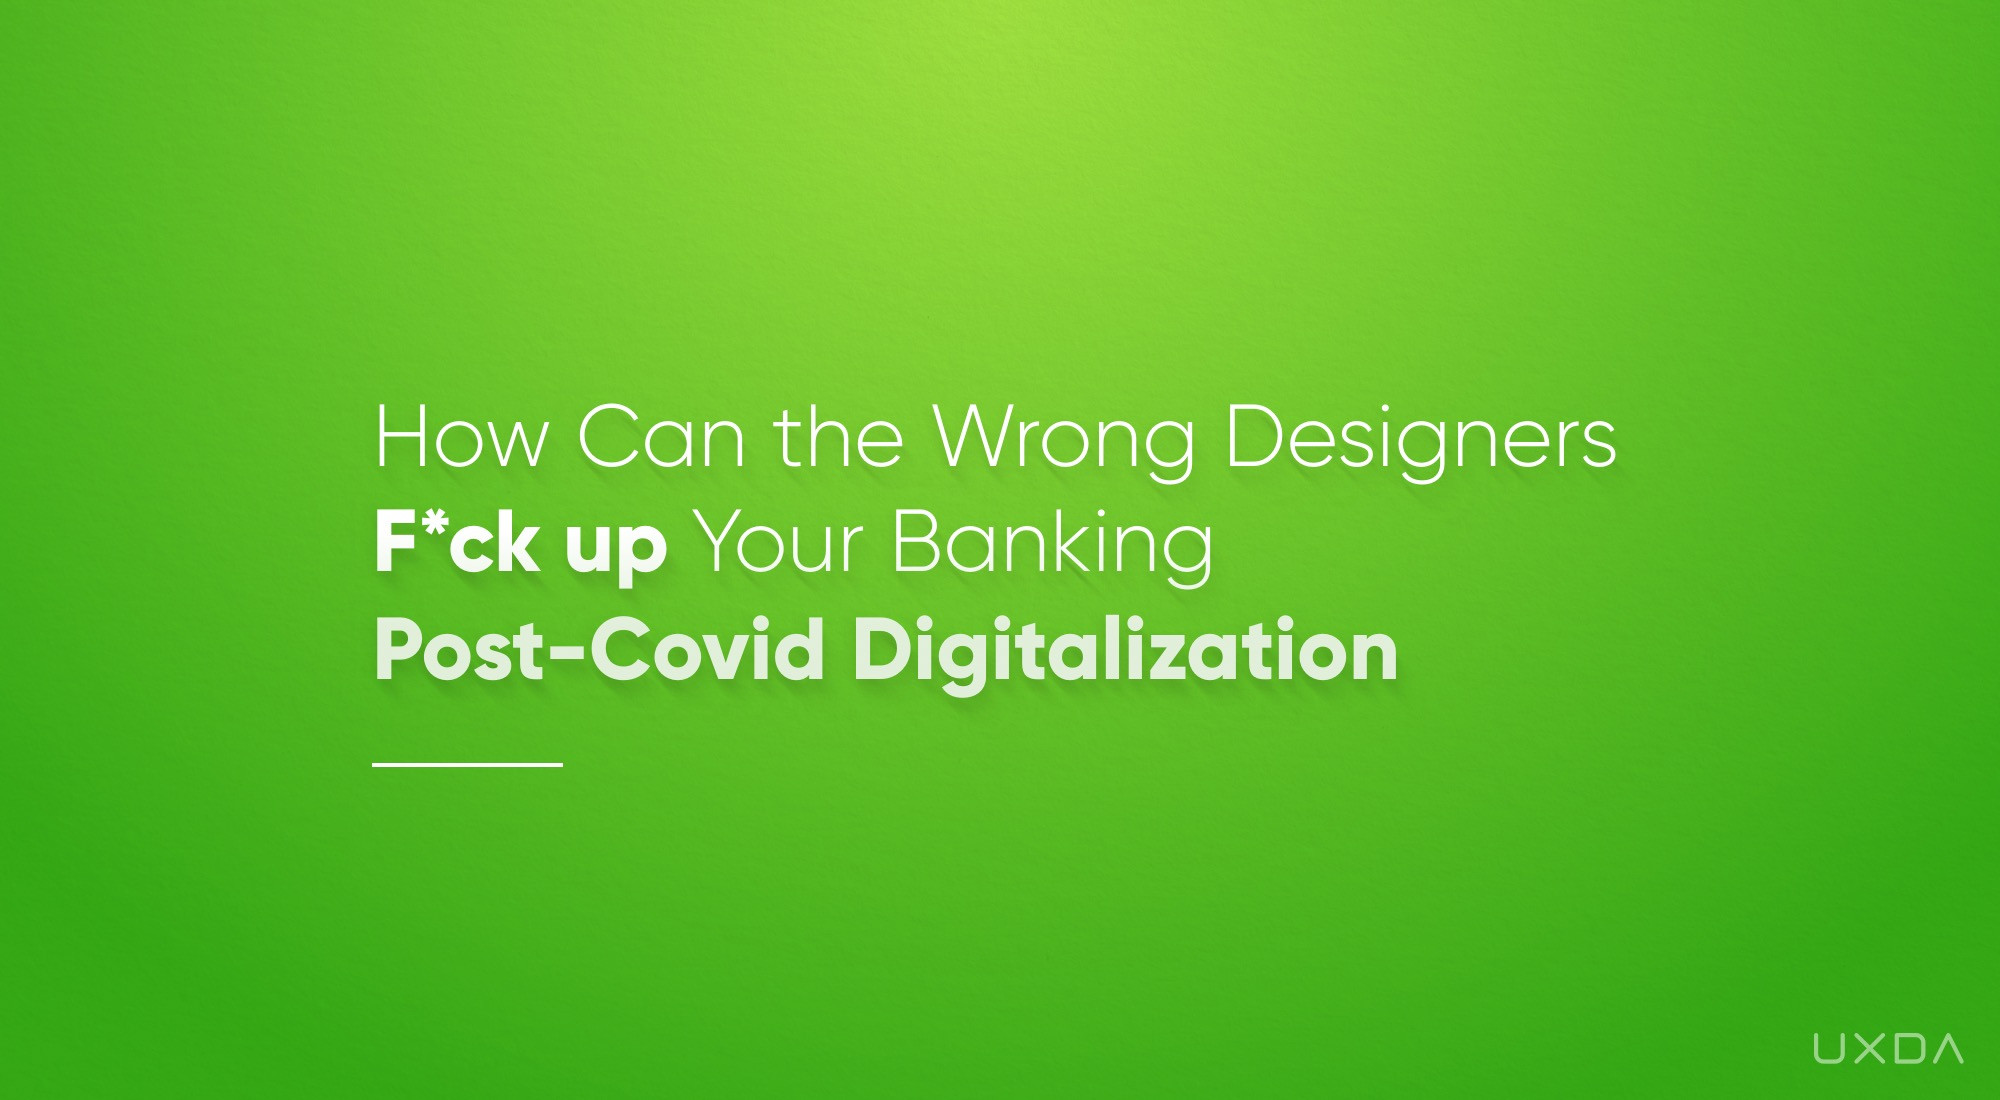 How to Hire Designers Right to Not F*ck up Bank Digitalization